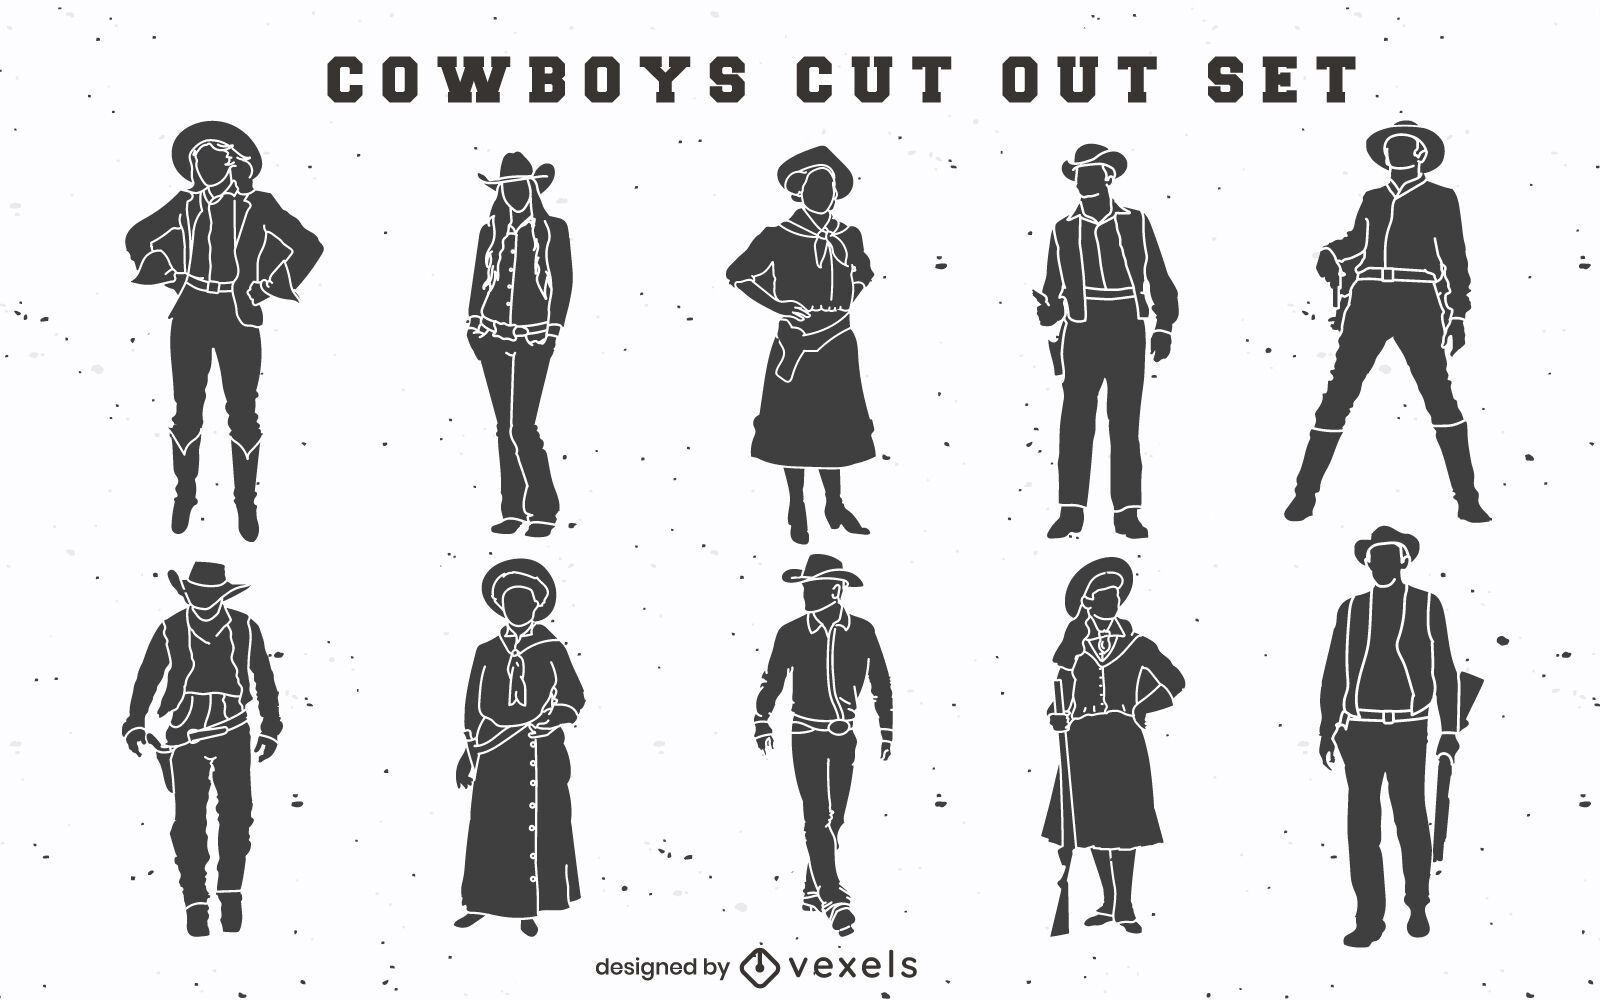 Cowboys and cowgirls cut out set